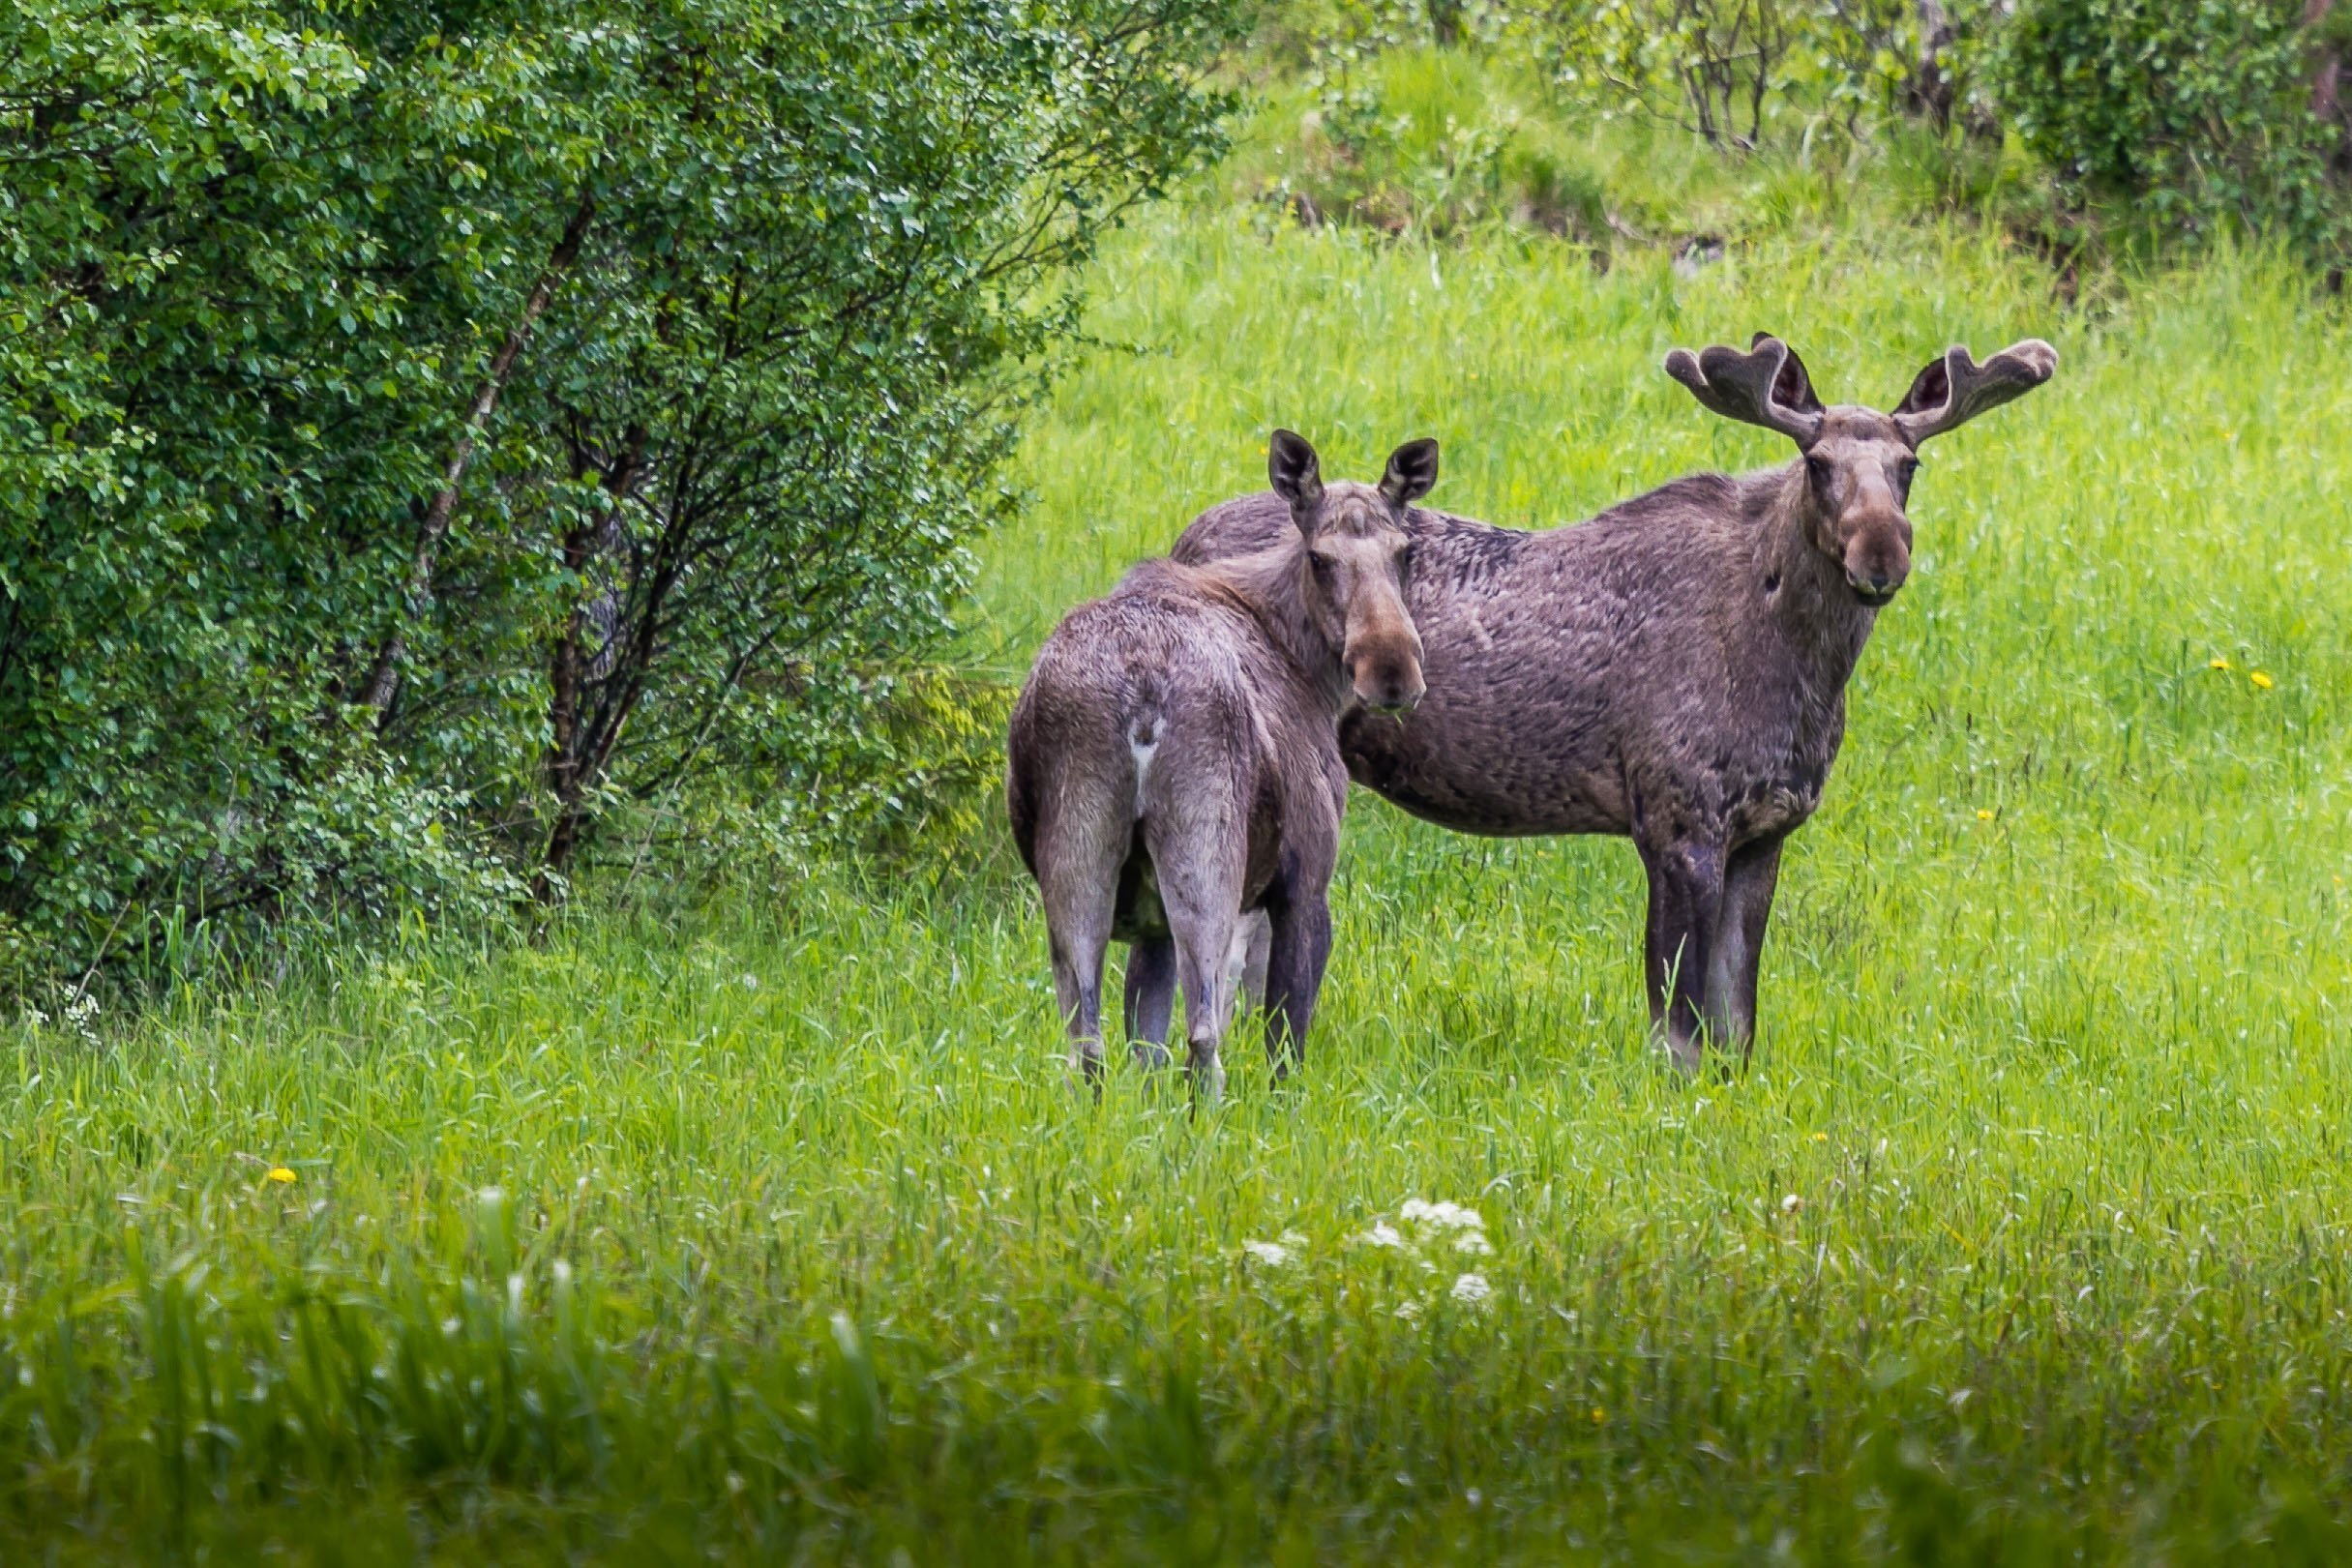 Moose in the wild, Norway. | Photo: Arne Madsen - adobe stock - copyright.